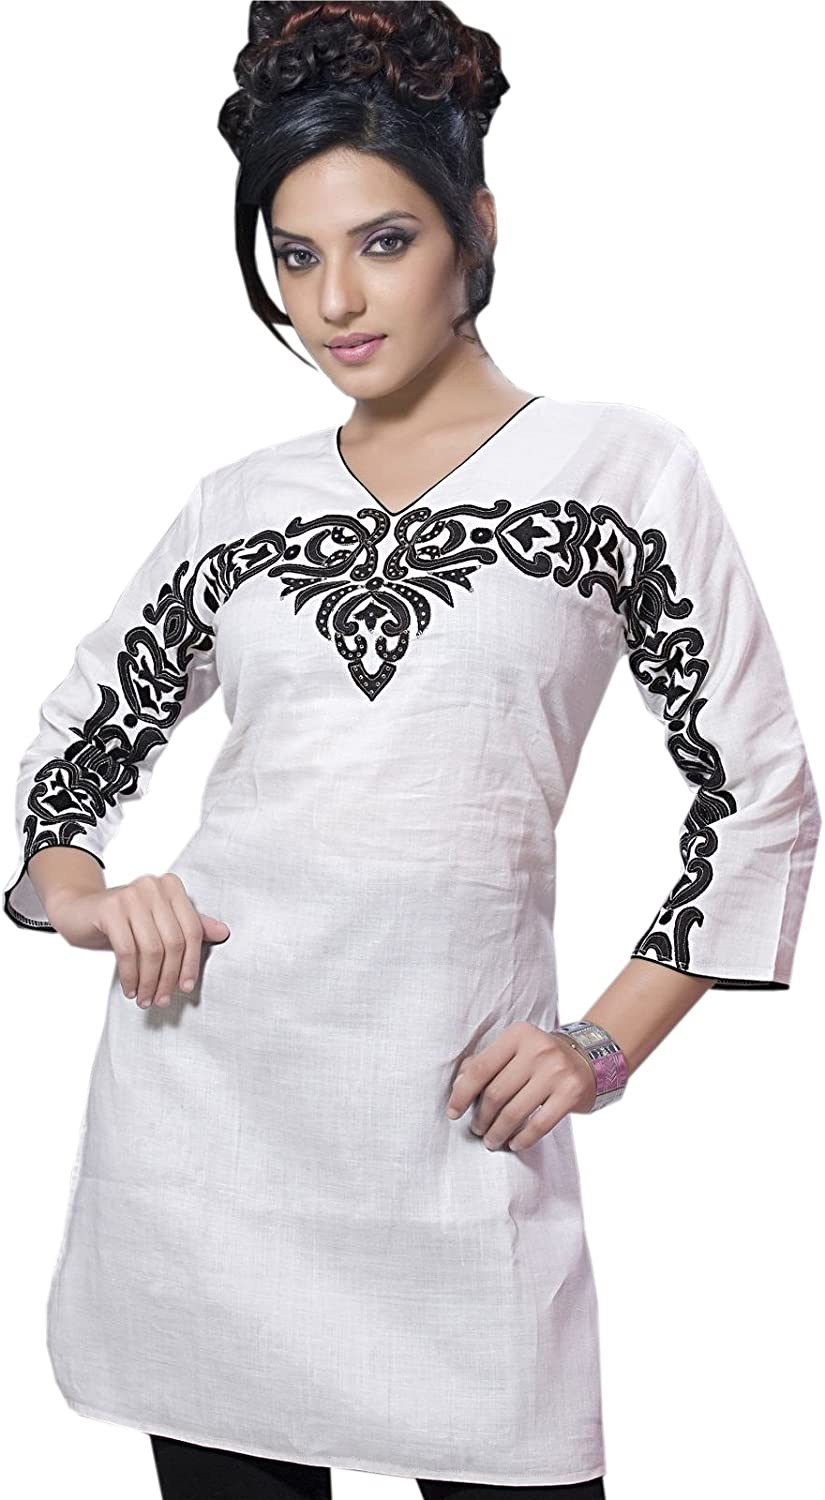 1545 Designs Women's V Neck Embroidered Shirt Tunic Top Dress